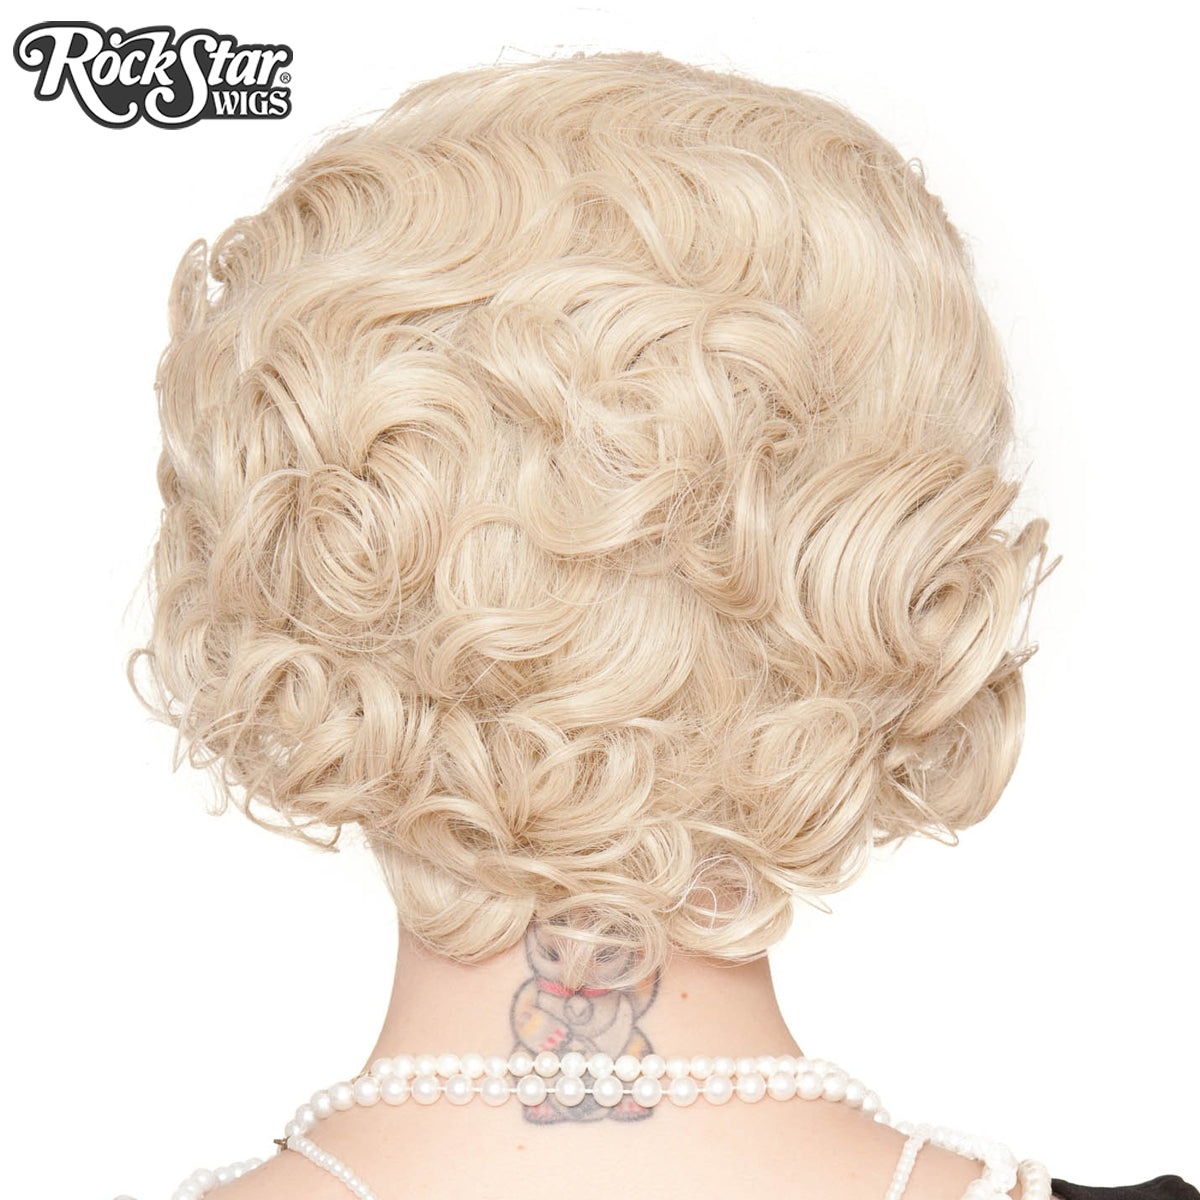 RockStar Wigs®- 1920's Flapper Finger Waves - Blonde (00838)